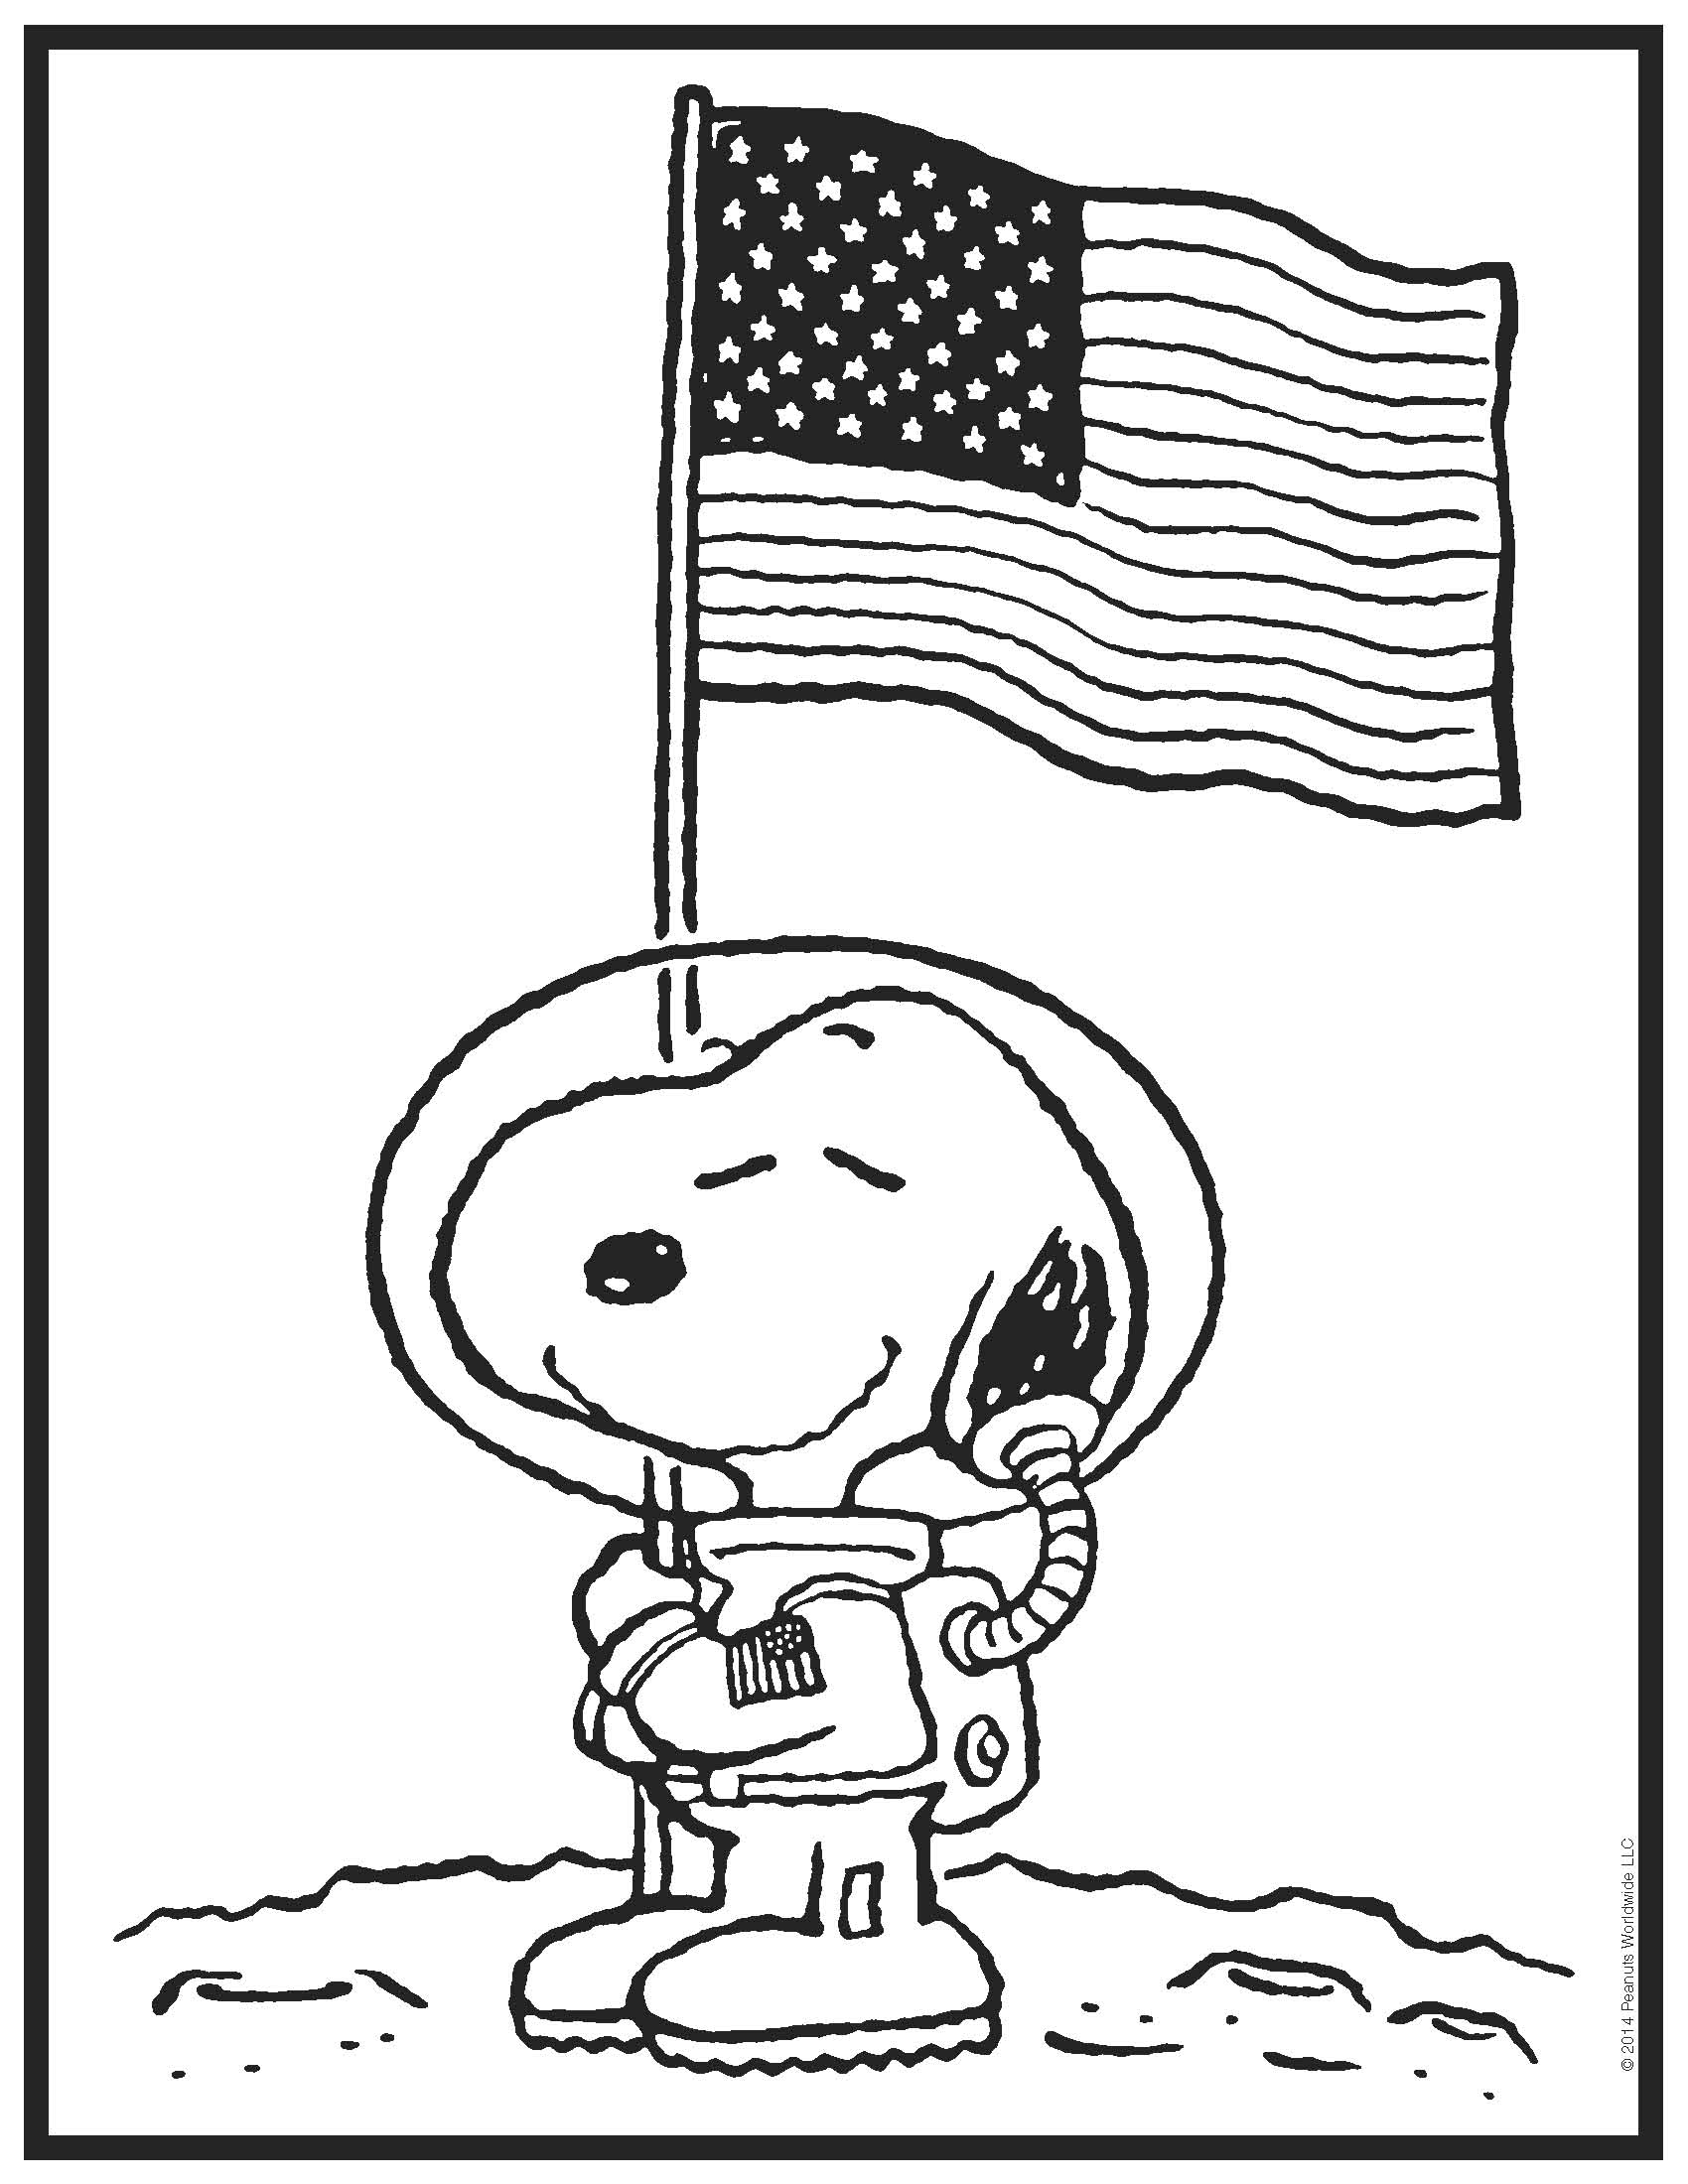 Peanuts Coloring Pages Printable 8 5 Kaartenstemp Nl